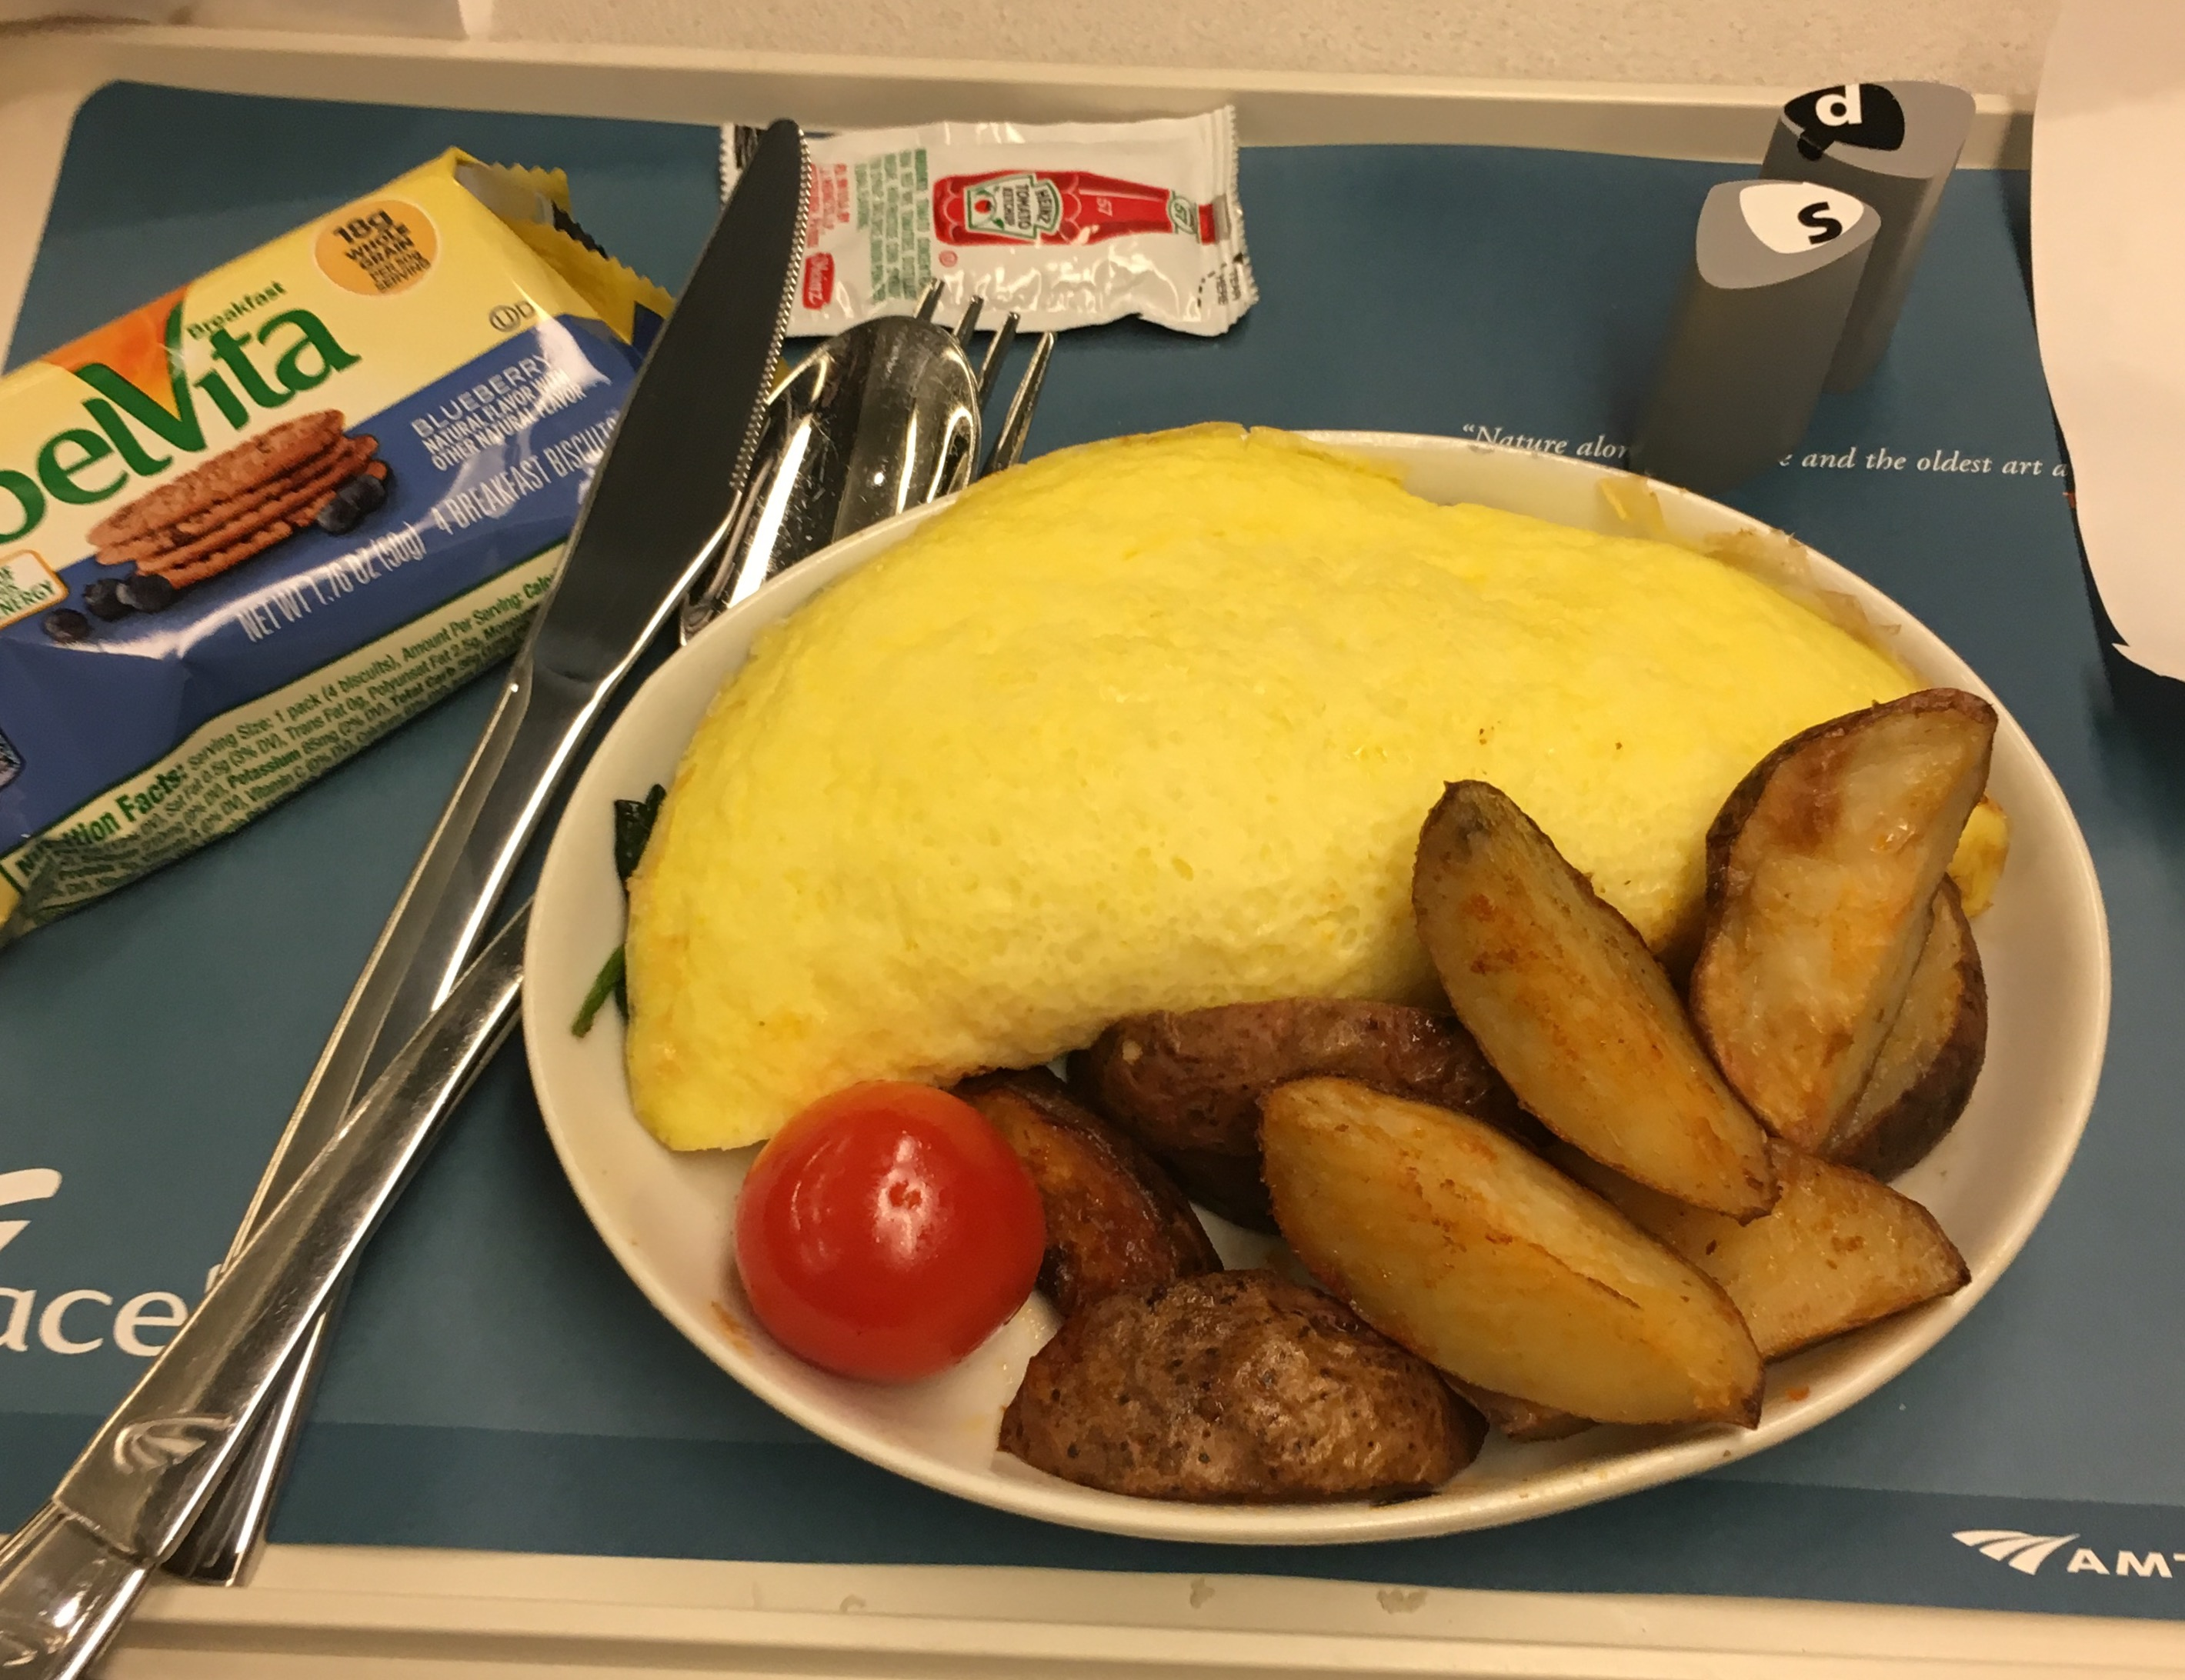 Amtrak breakfast